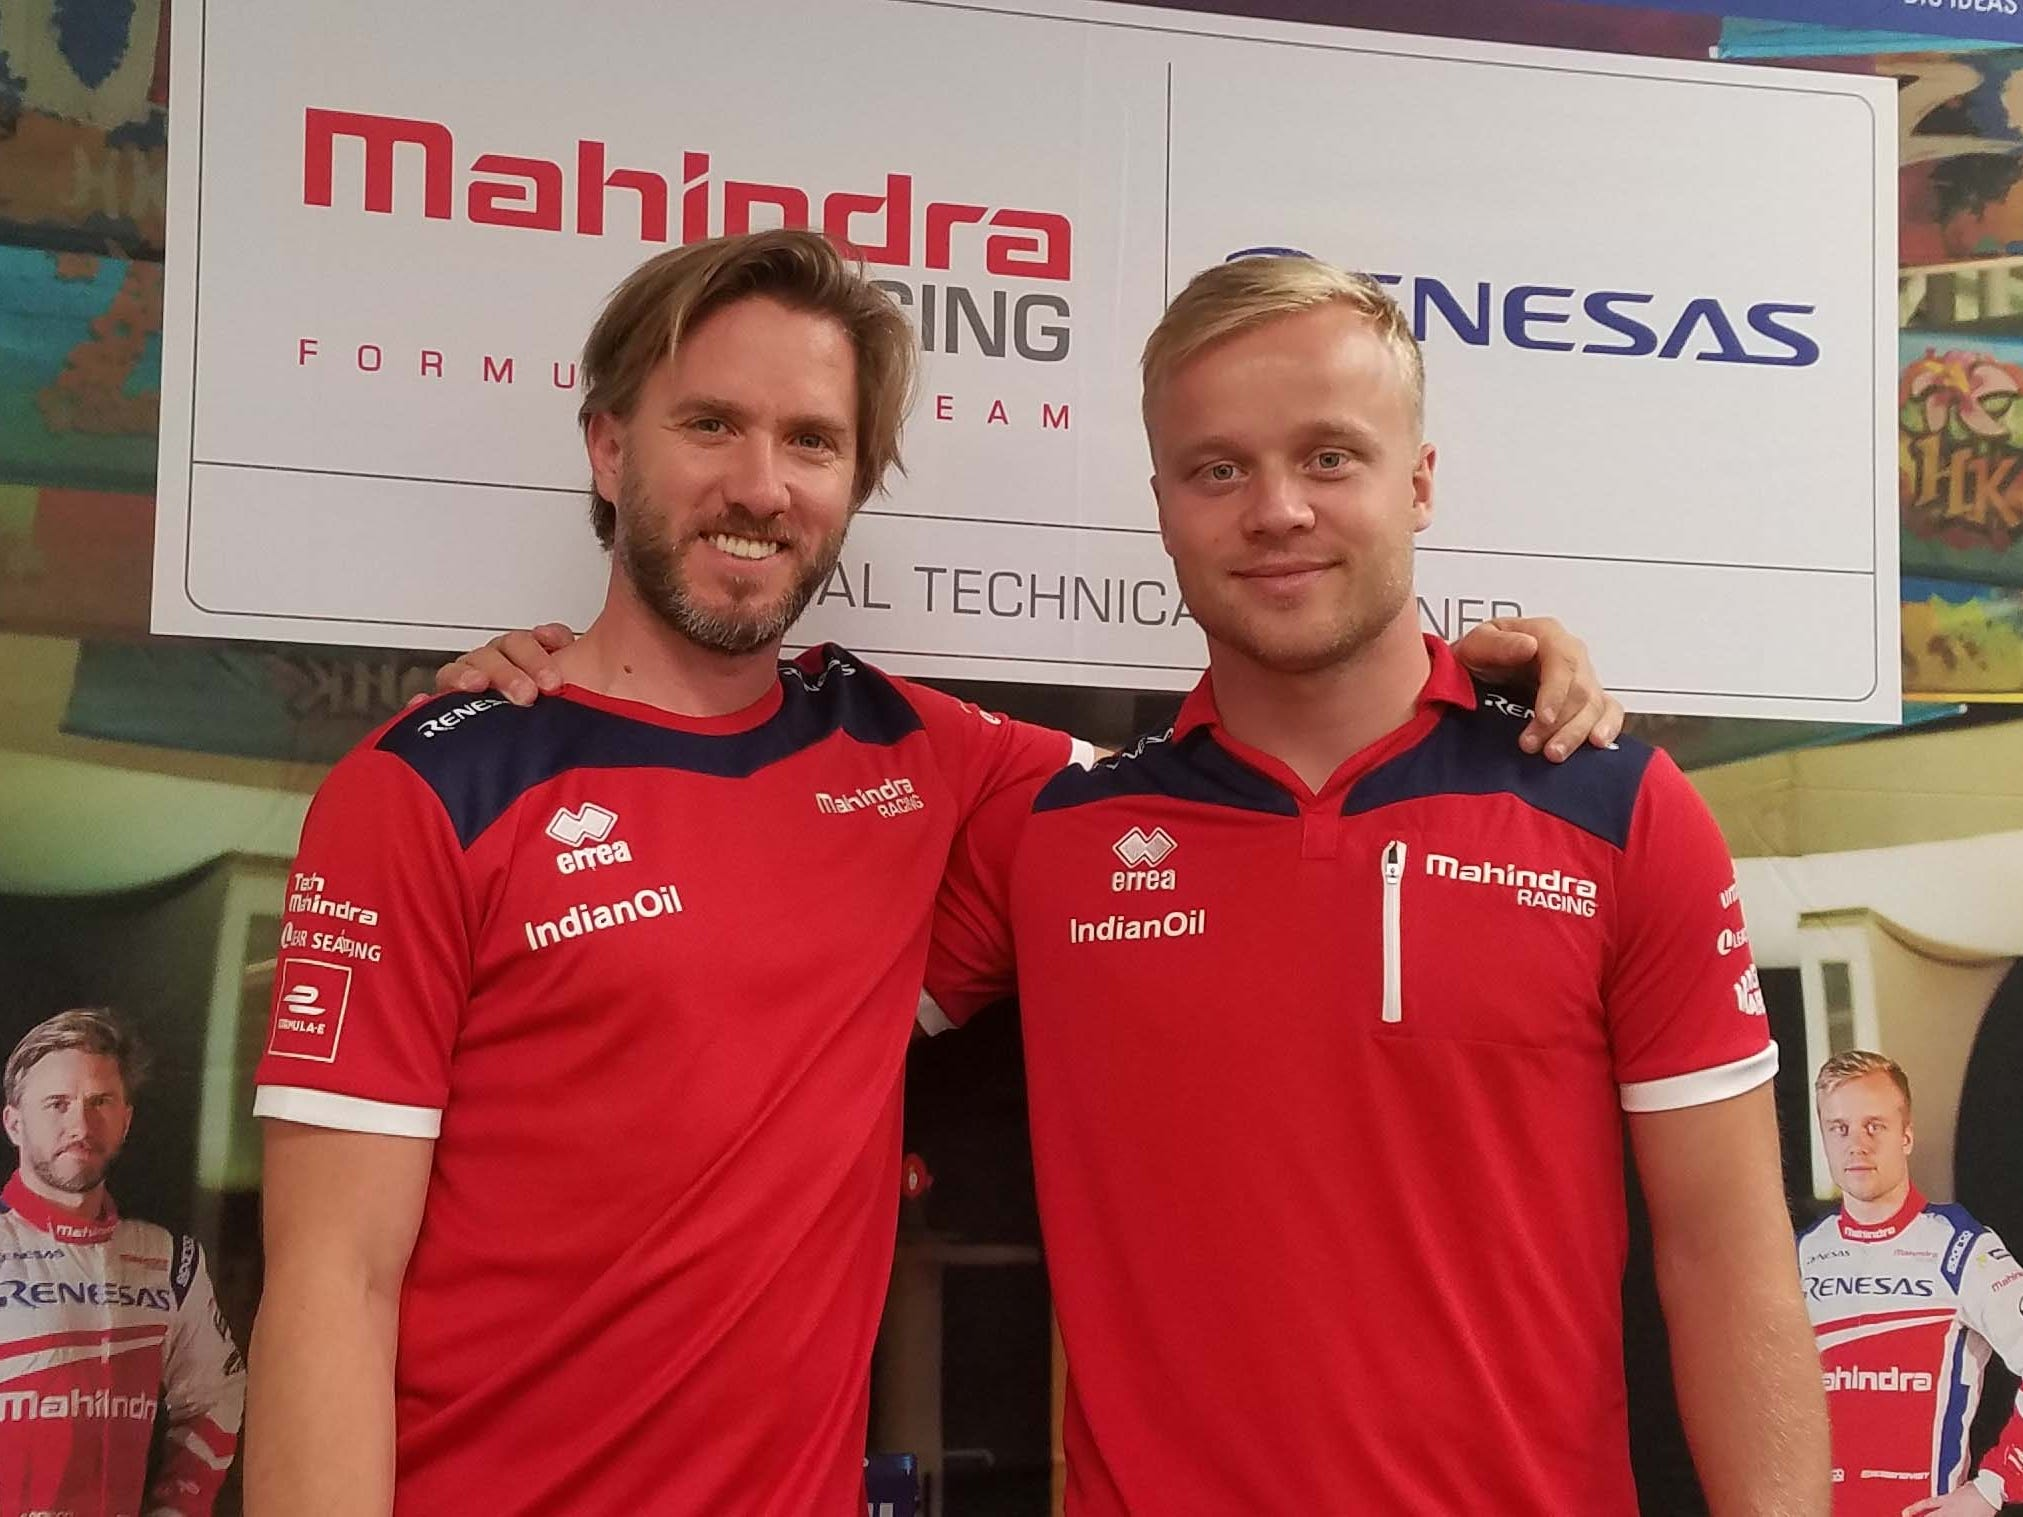 Formula E attracts top drivers like ex-Formula One ace Nick Heidfeld of Germany, left, and Felix Rosenqvist of Sweden, an ex-Formula 3 champ. They race for India's Mahindra team.